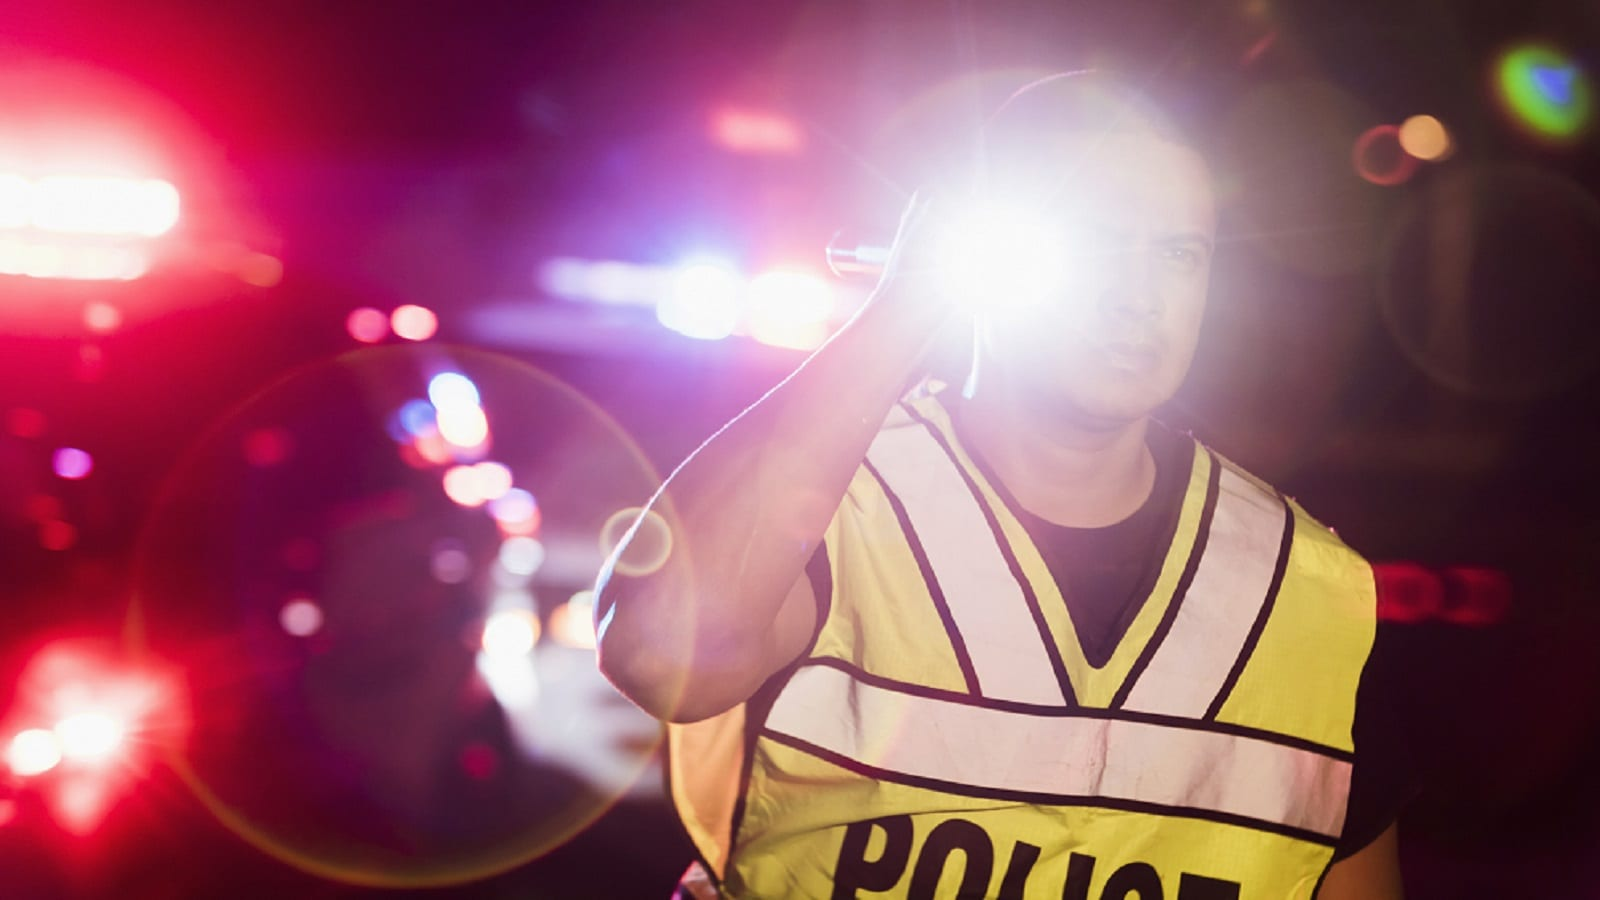 Police Officer Shining Flashlight Stock Photo